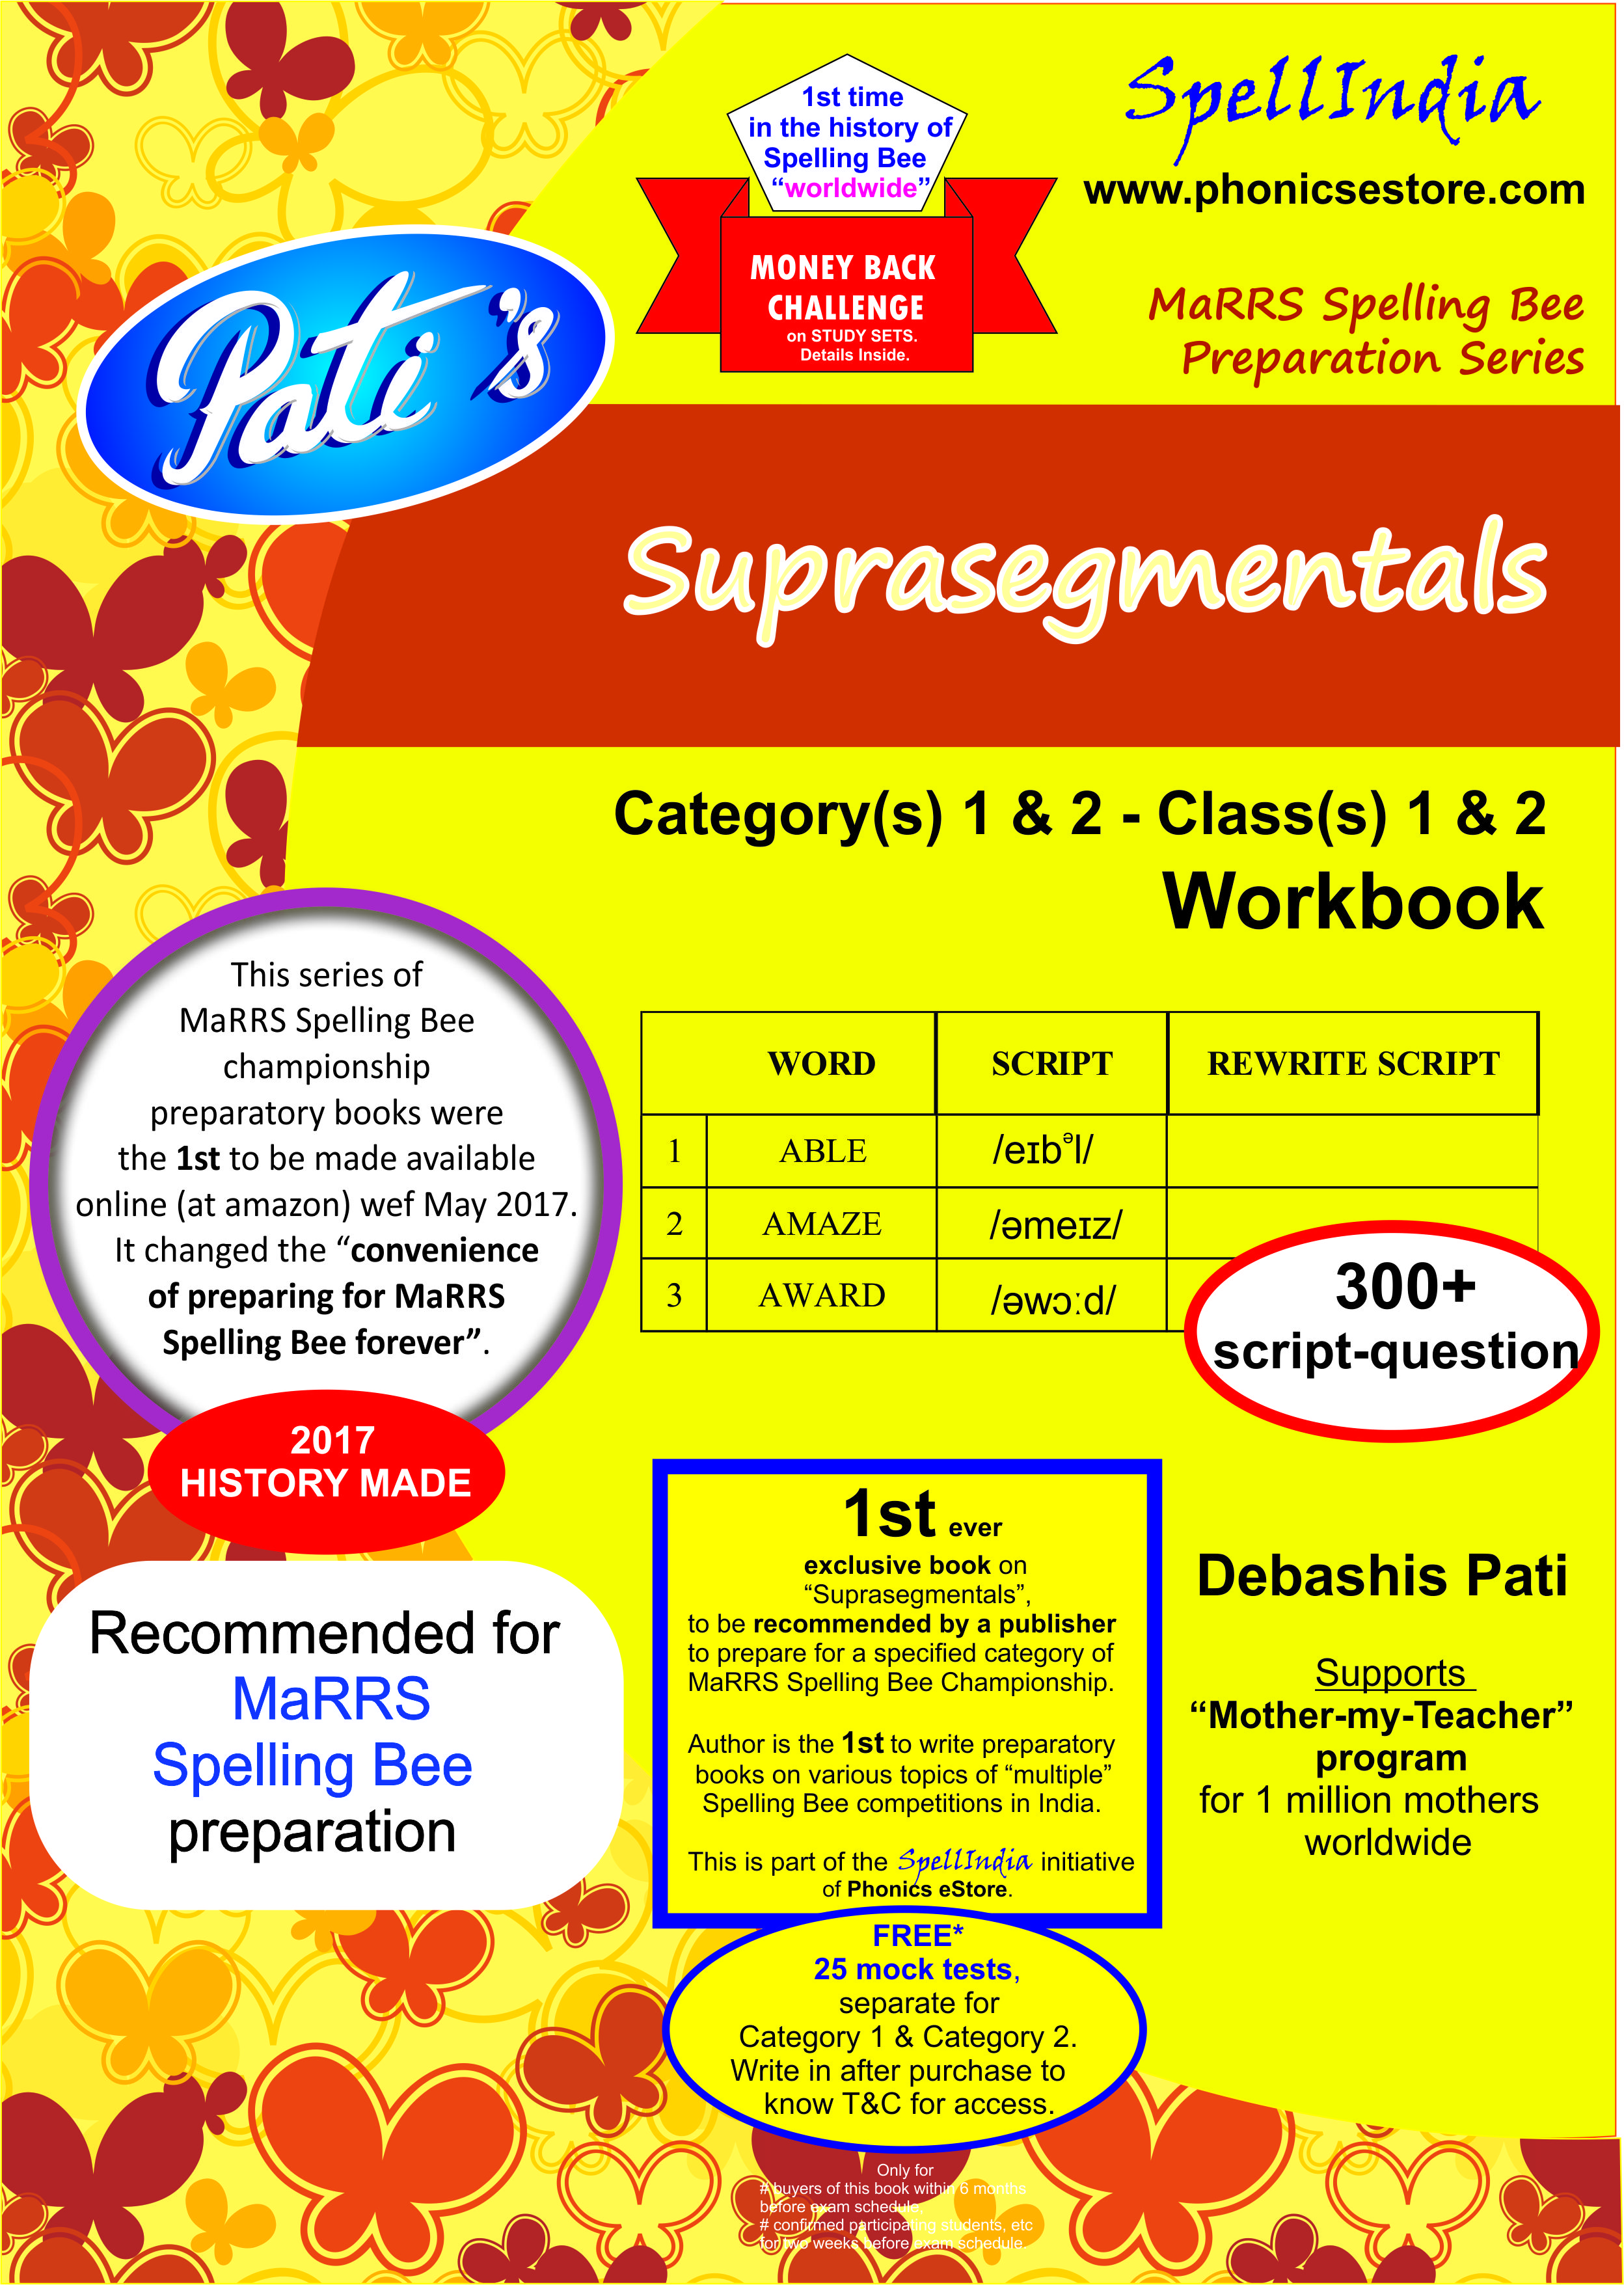 Suprasegmentals learning book marrs spelling bee